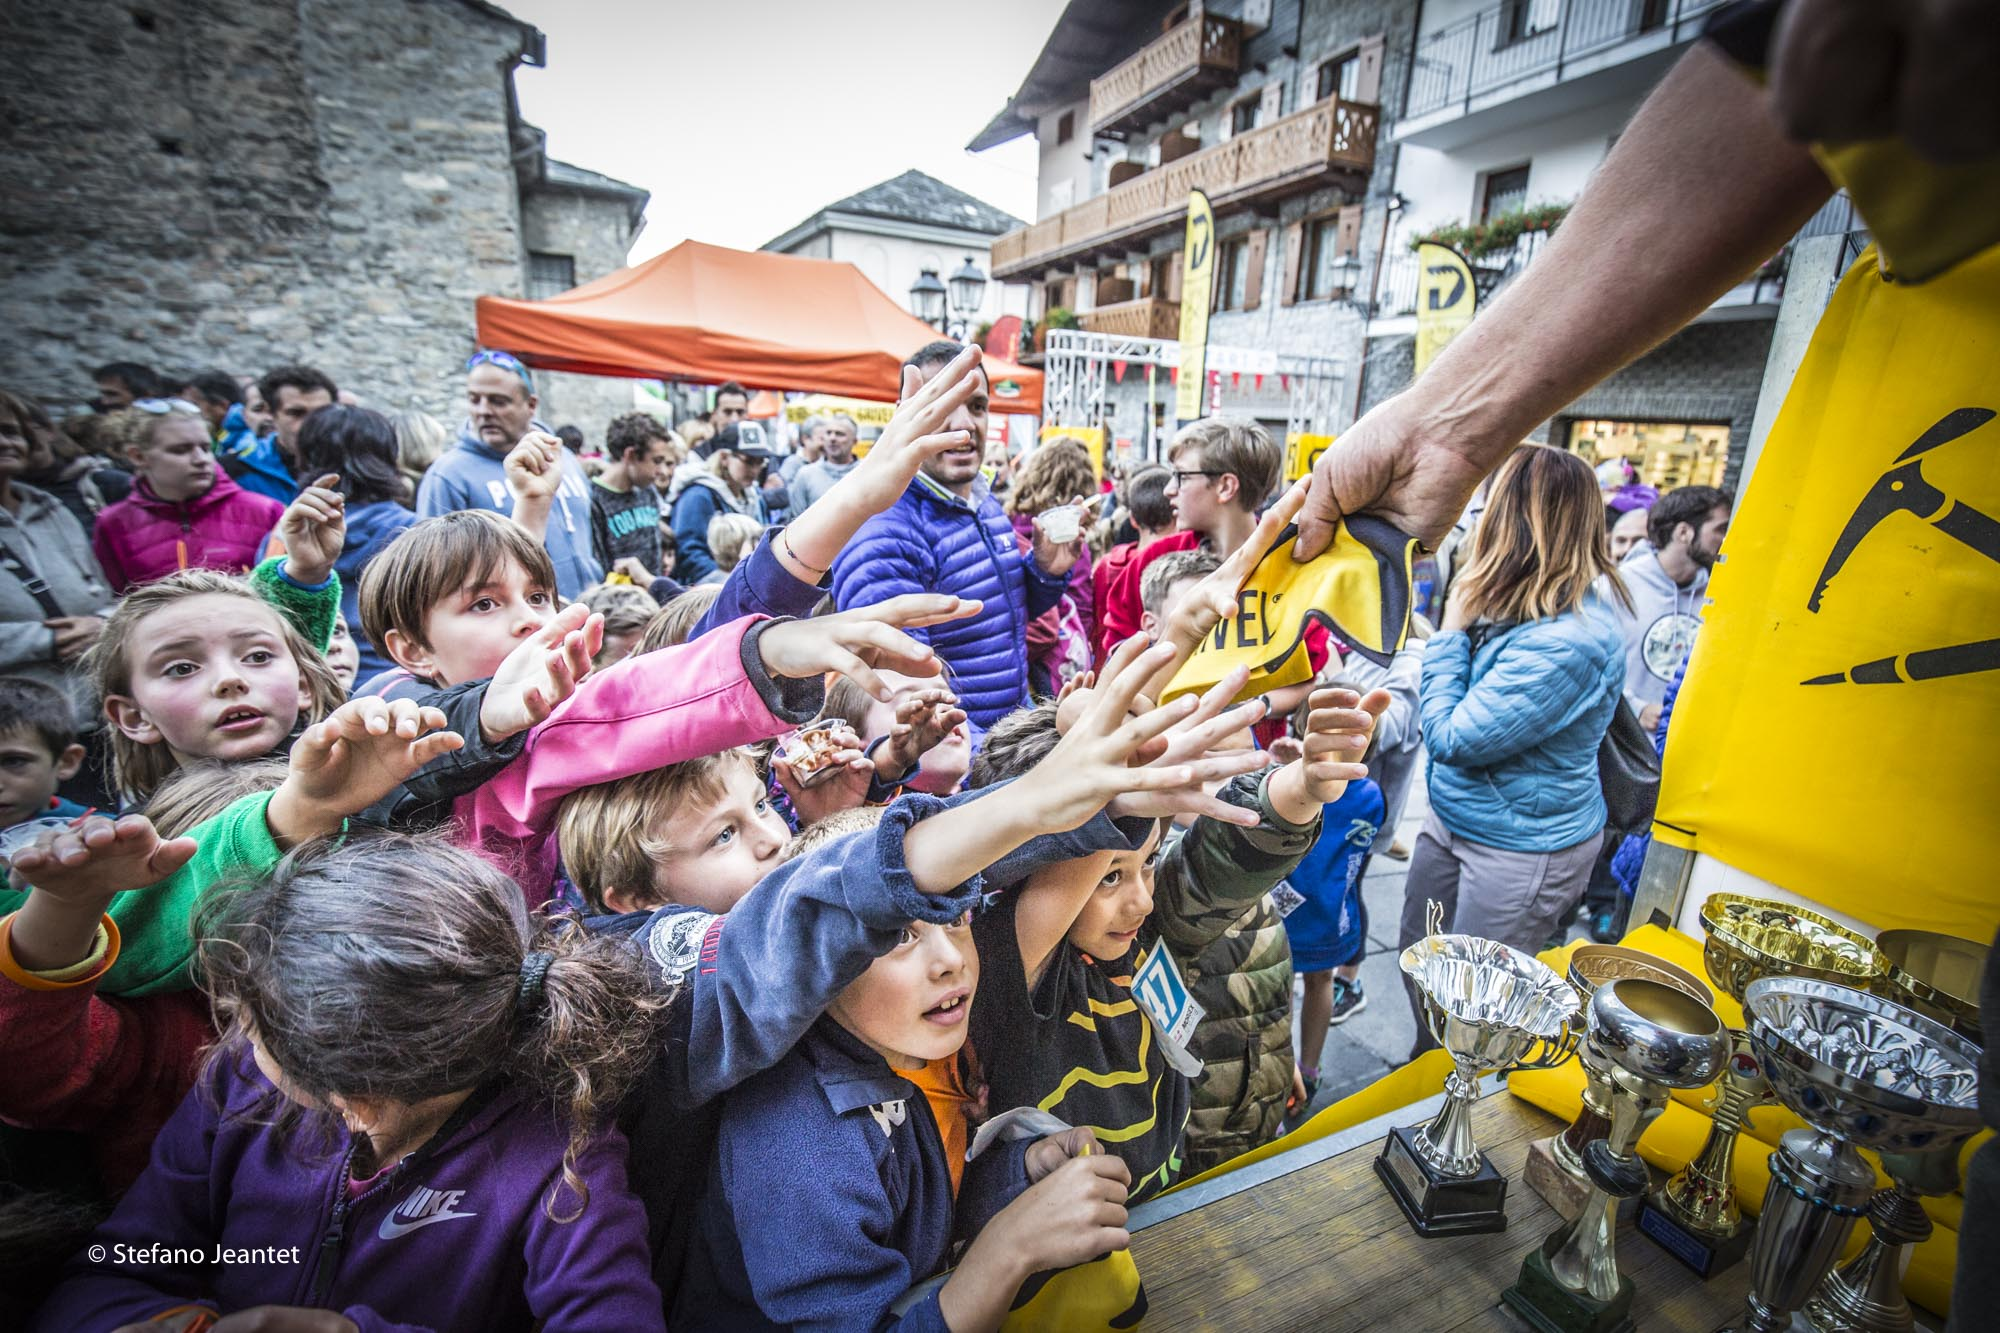 Baby LiconyTrail18_PH Stefano Jeantet-23